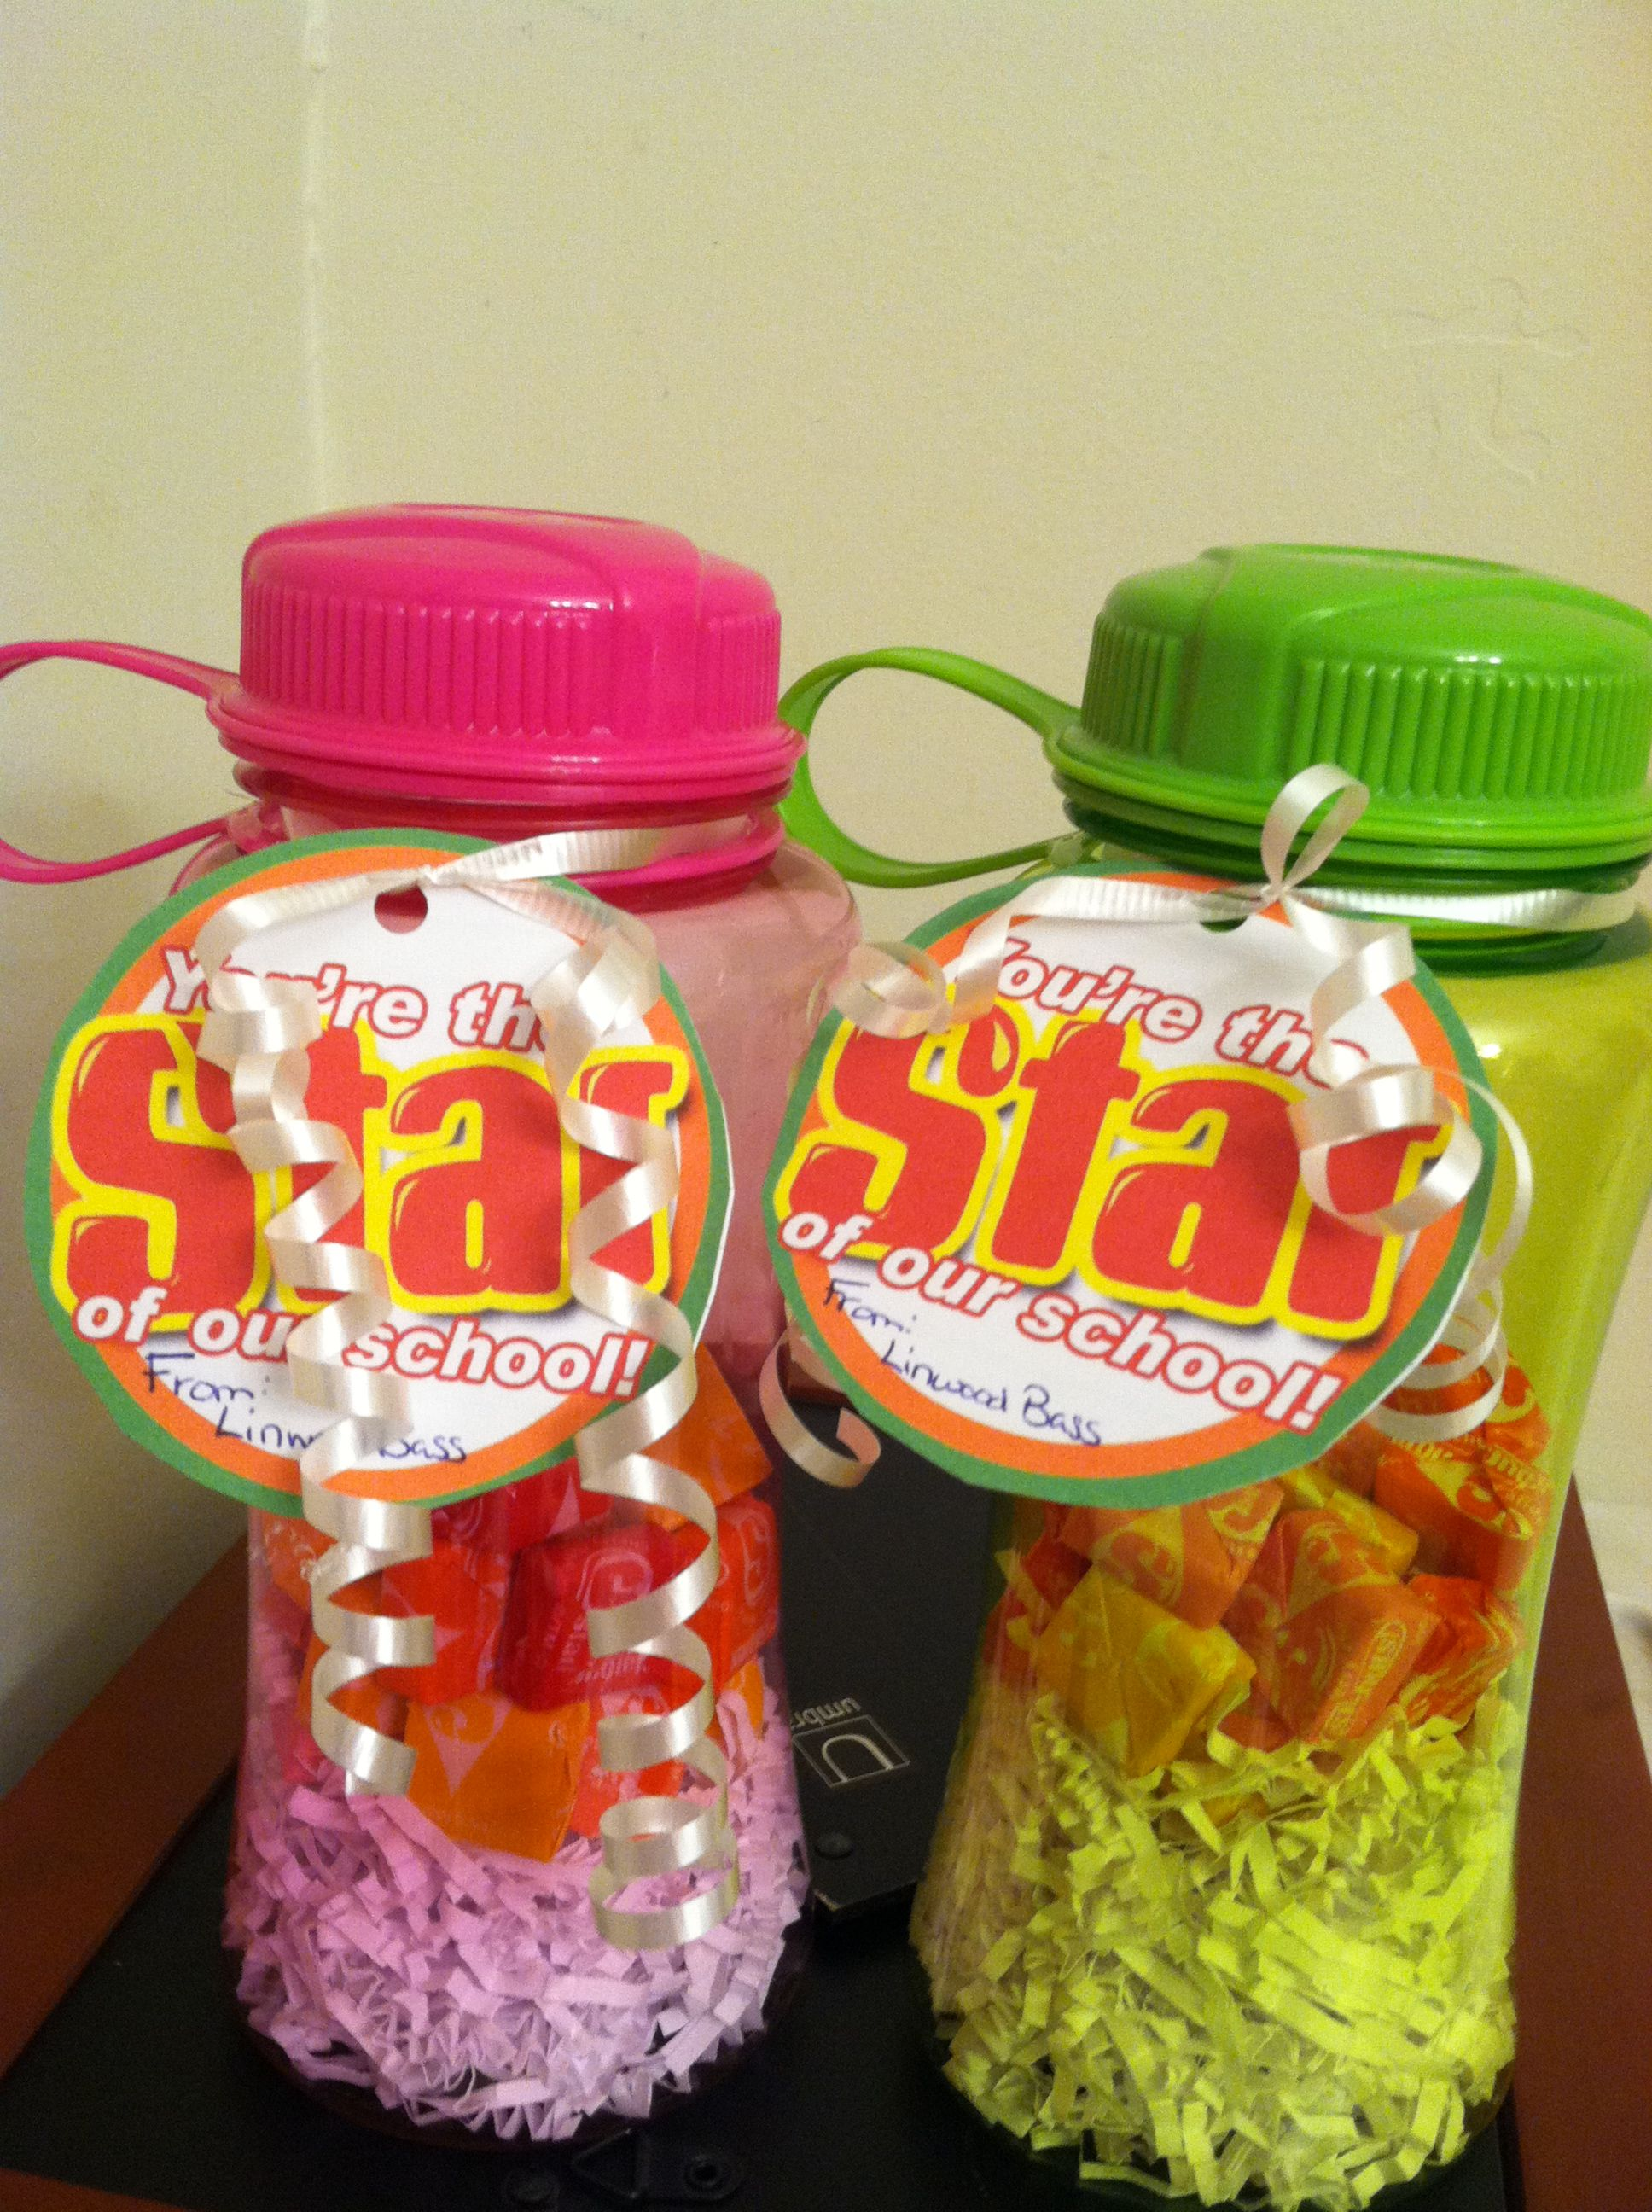 Great And Cheap Gifts For School Principals And Office Staff From The Kids At The End Of The